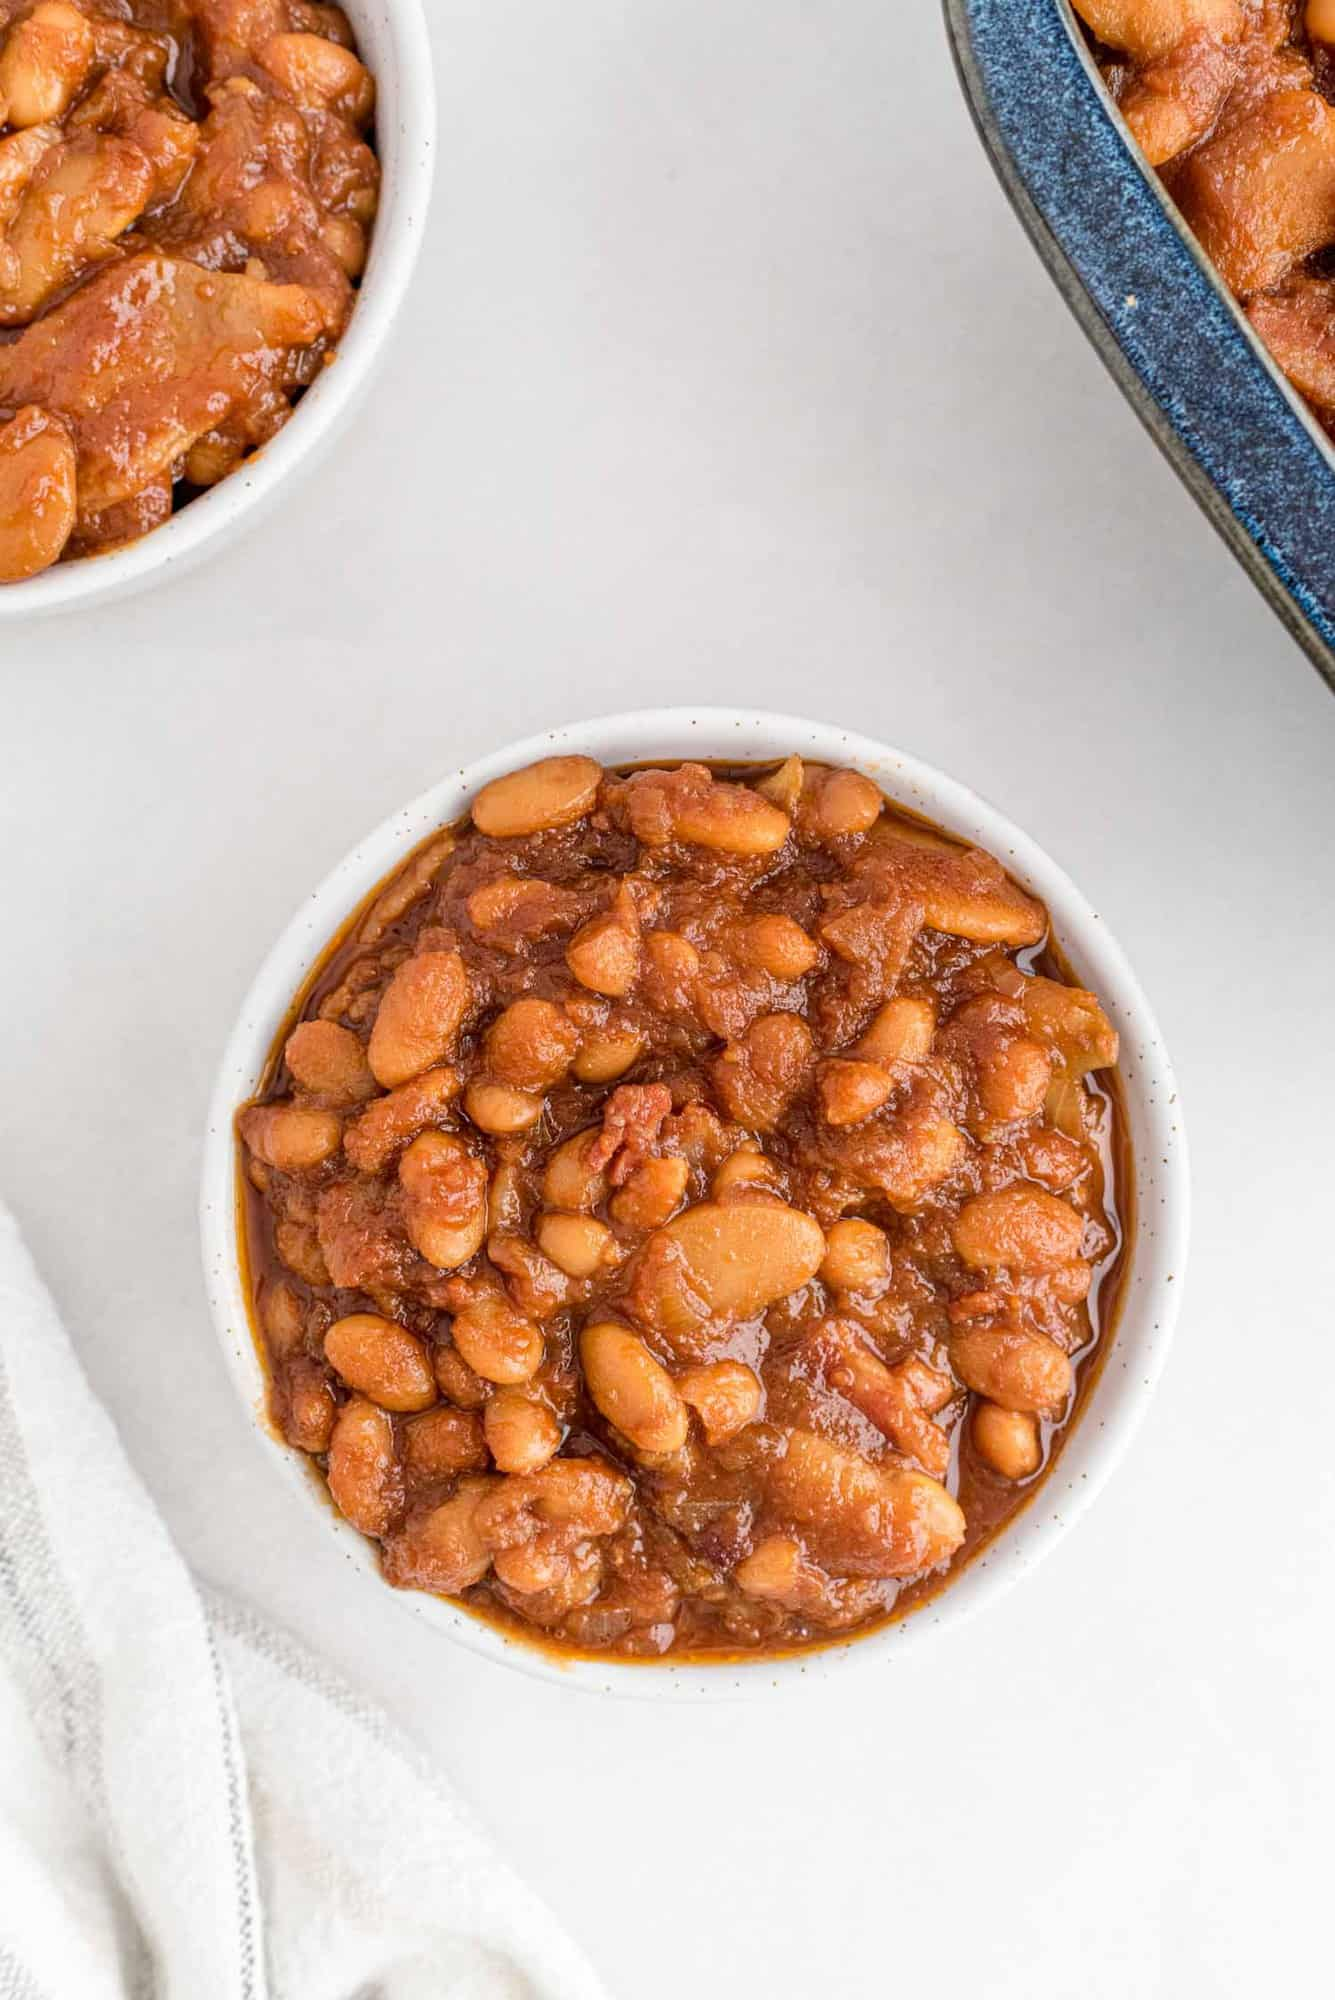 Baked beans in a small white bowl.